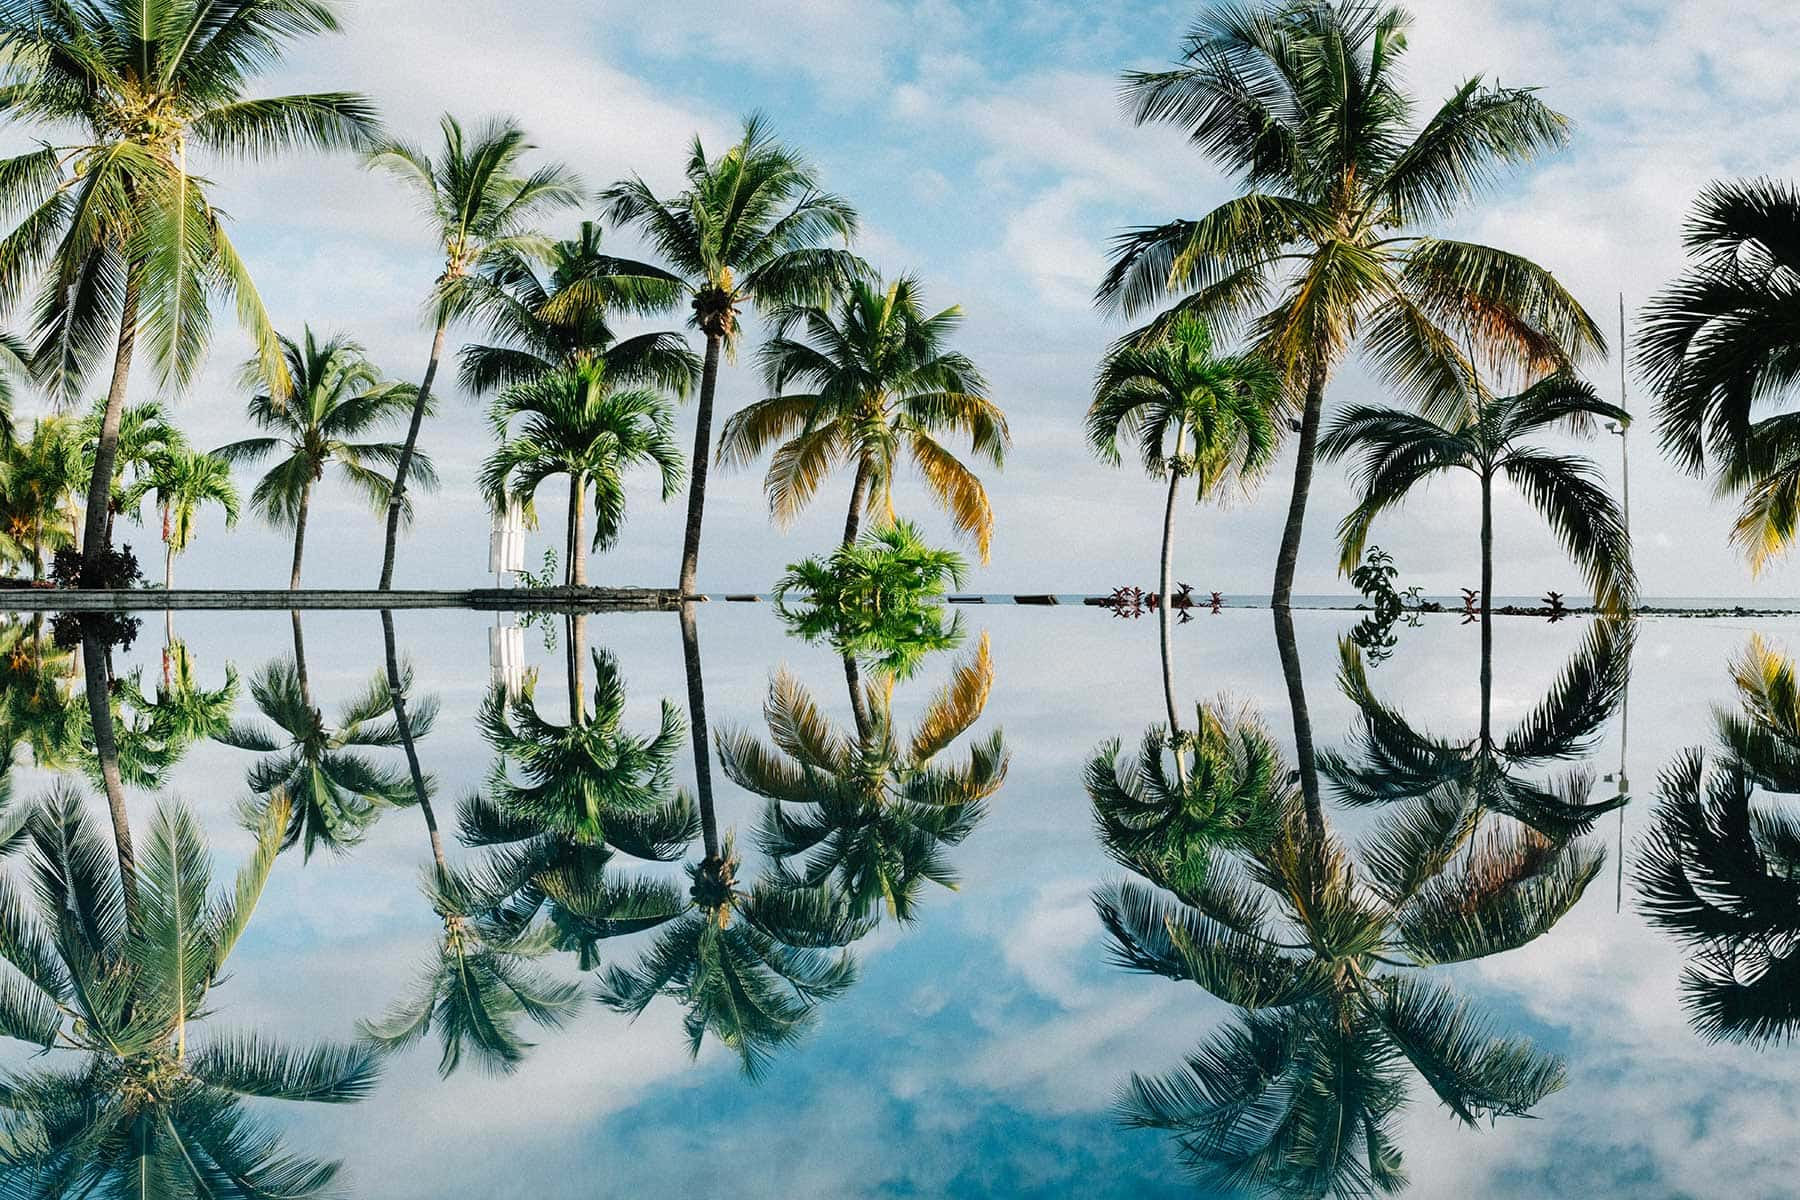 Trips-to-Mauritius-Nygren-&-Lind-Travel-agency---pool-and-palms